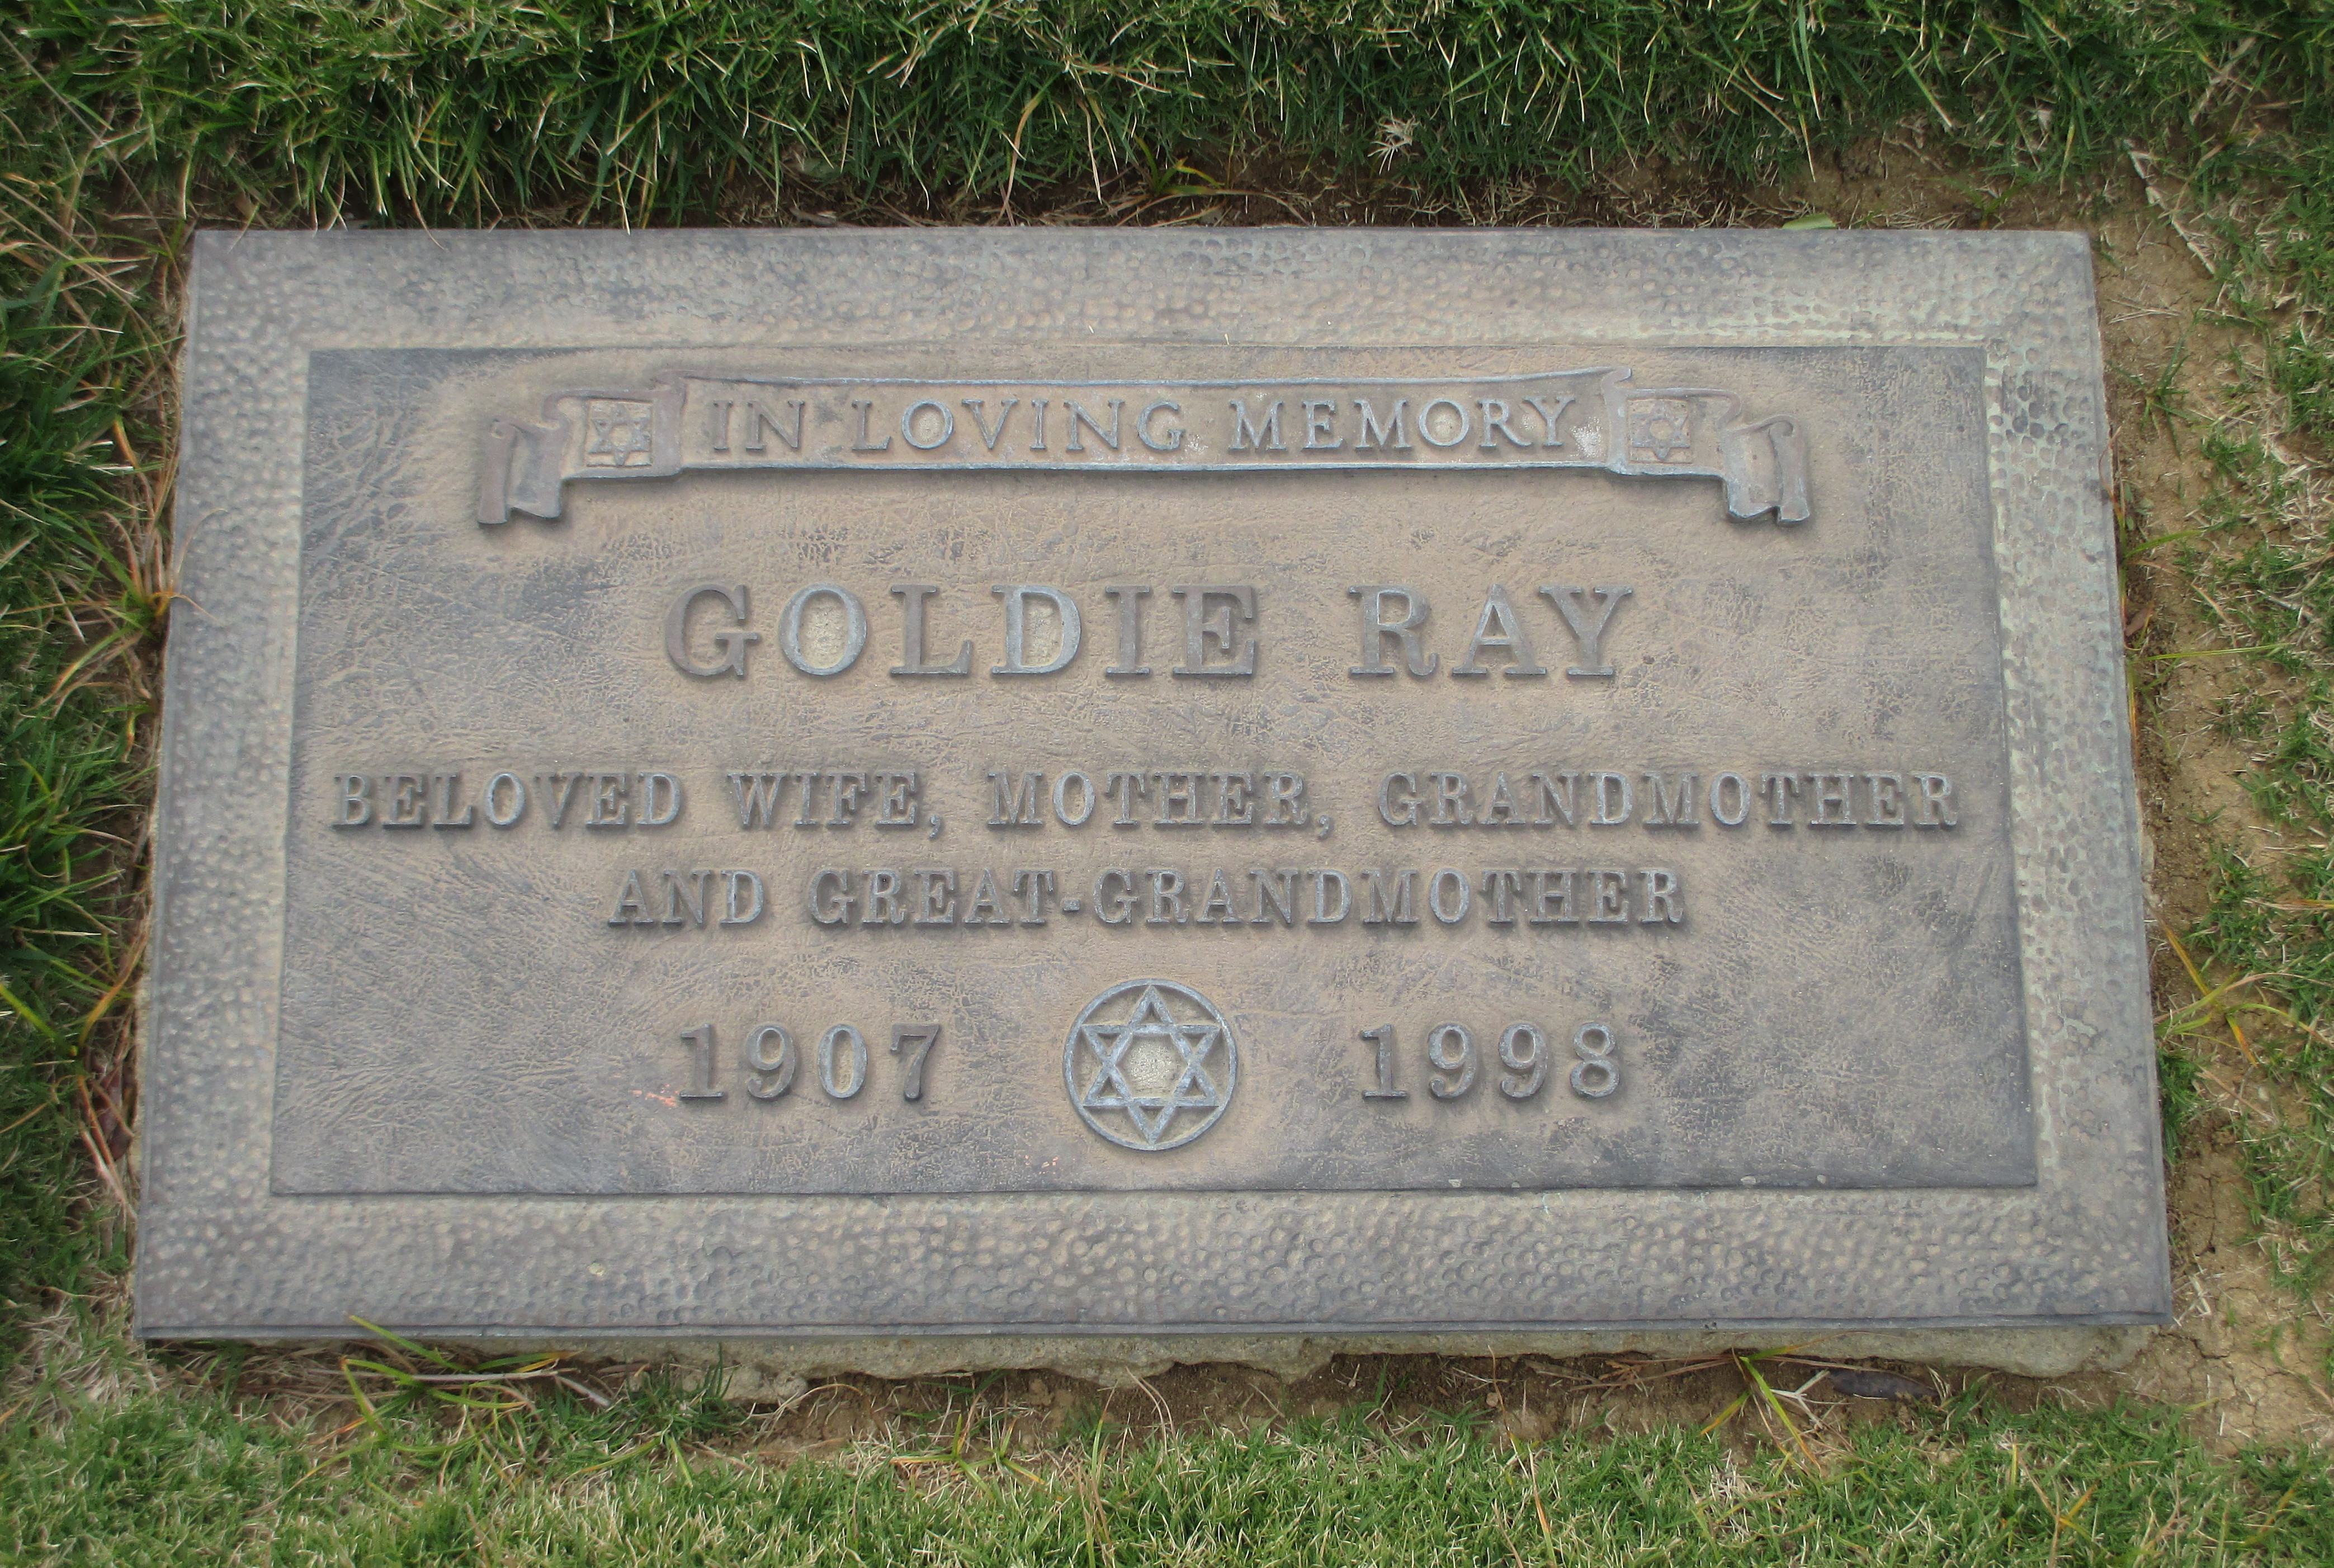 Goldie Ray